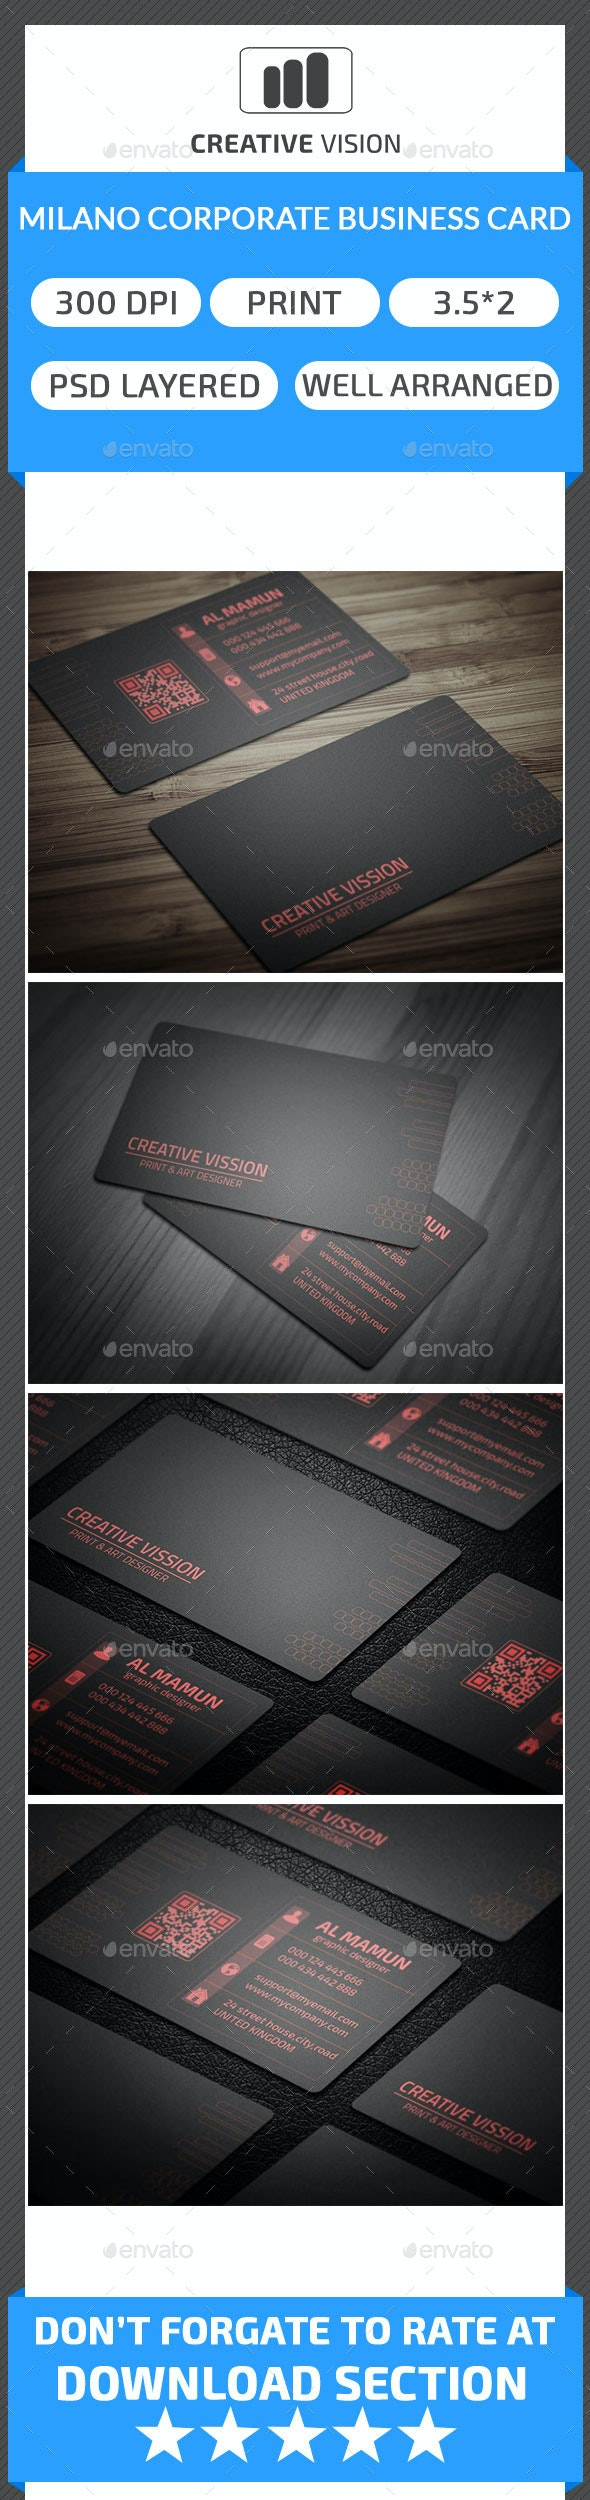 Milano & Corporate Business Card - Corporate Business Cards